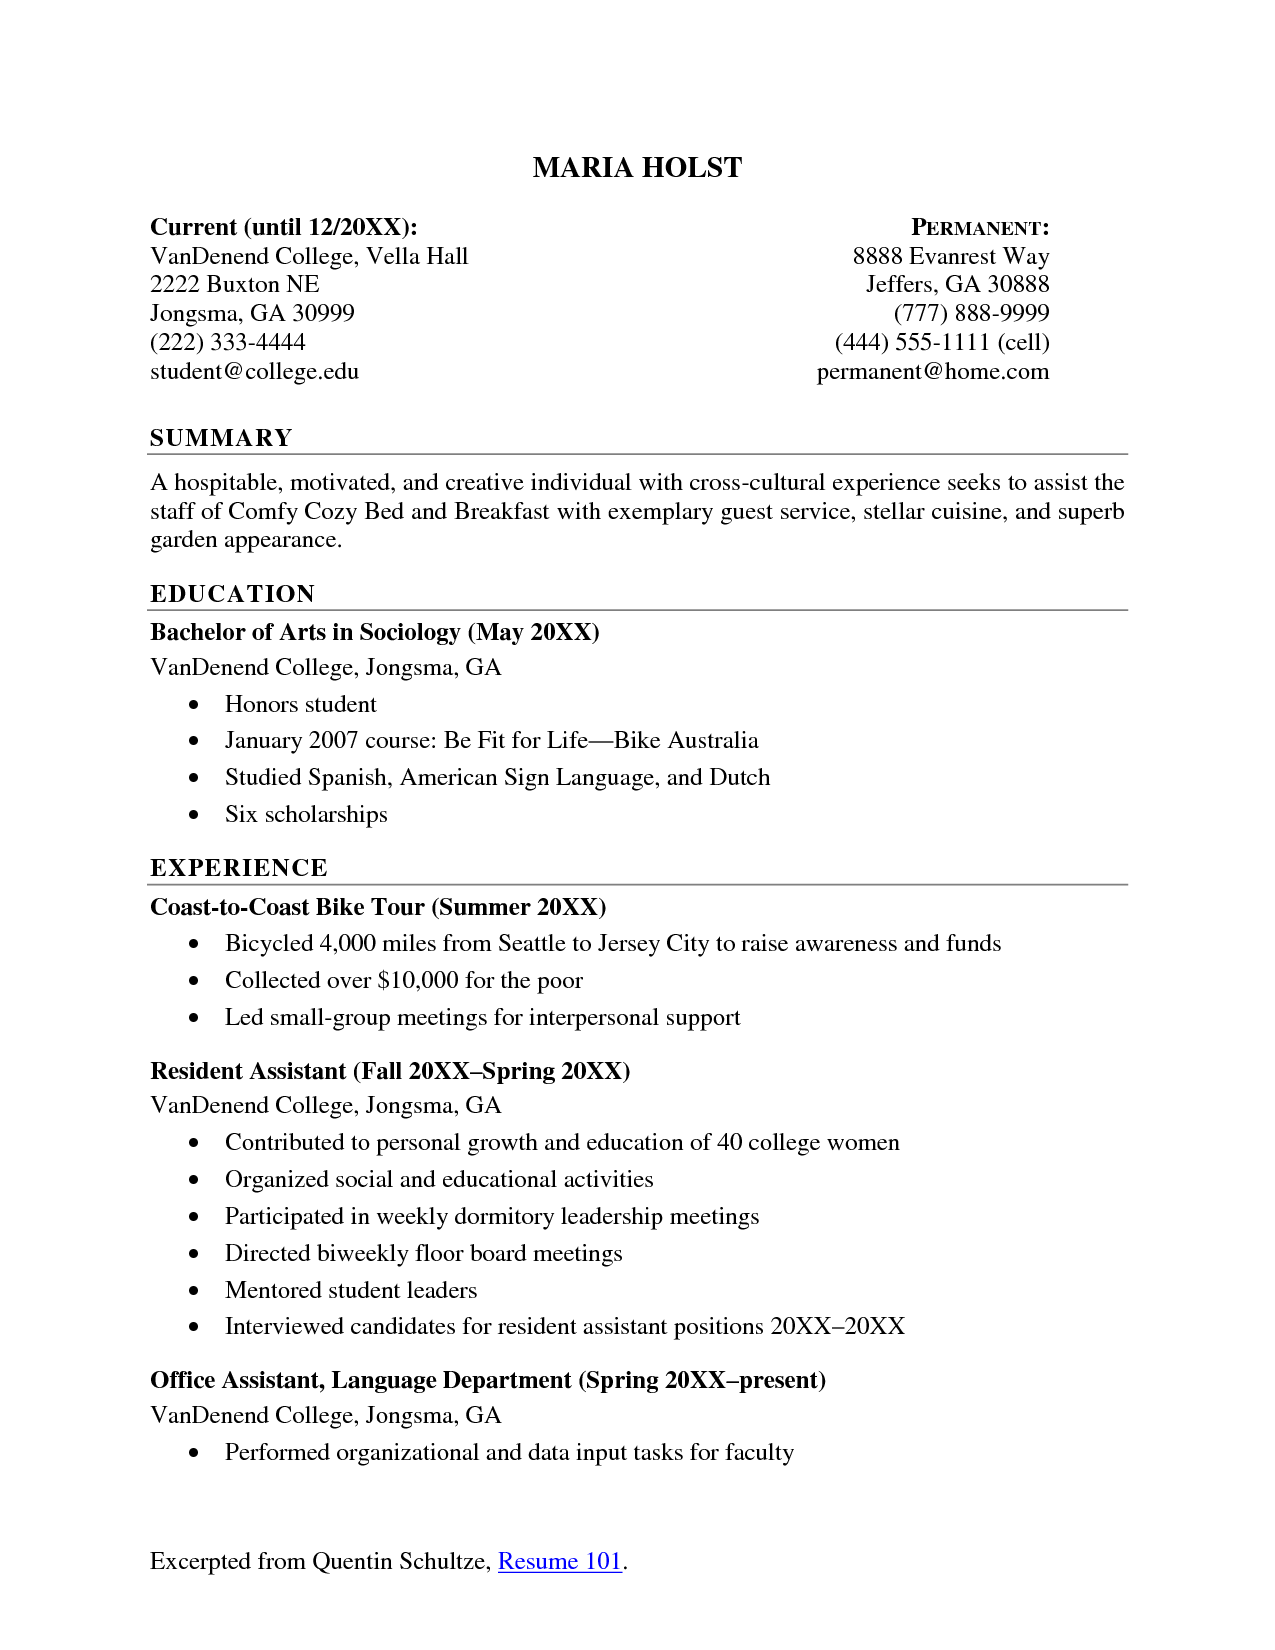 College Internship Resume Template Fascinating Sample Resume For College Student Supermamanscom  Httpwww